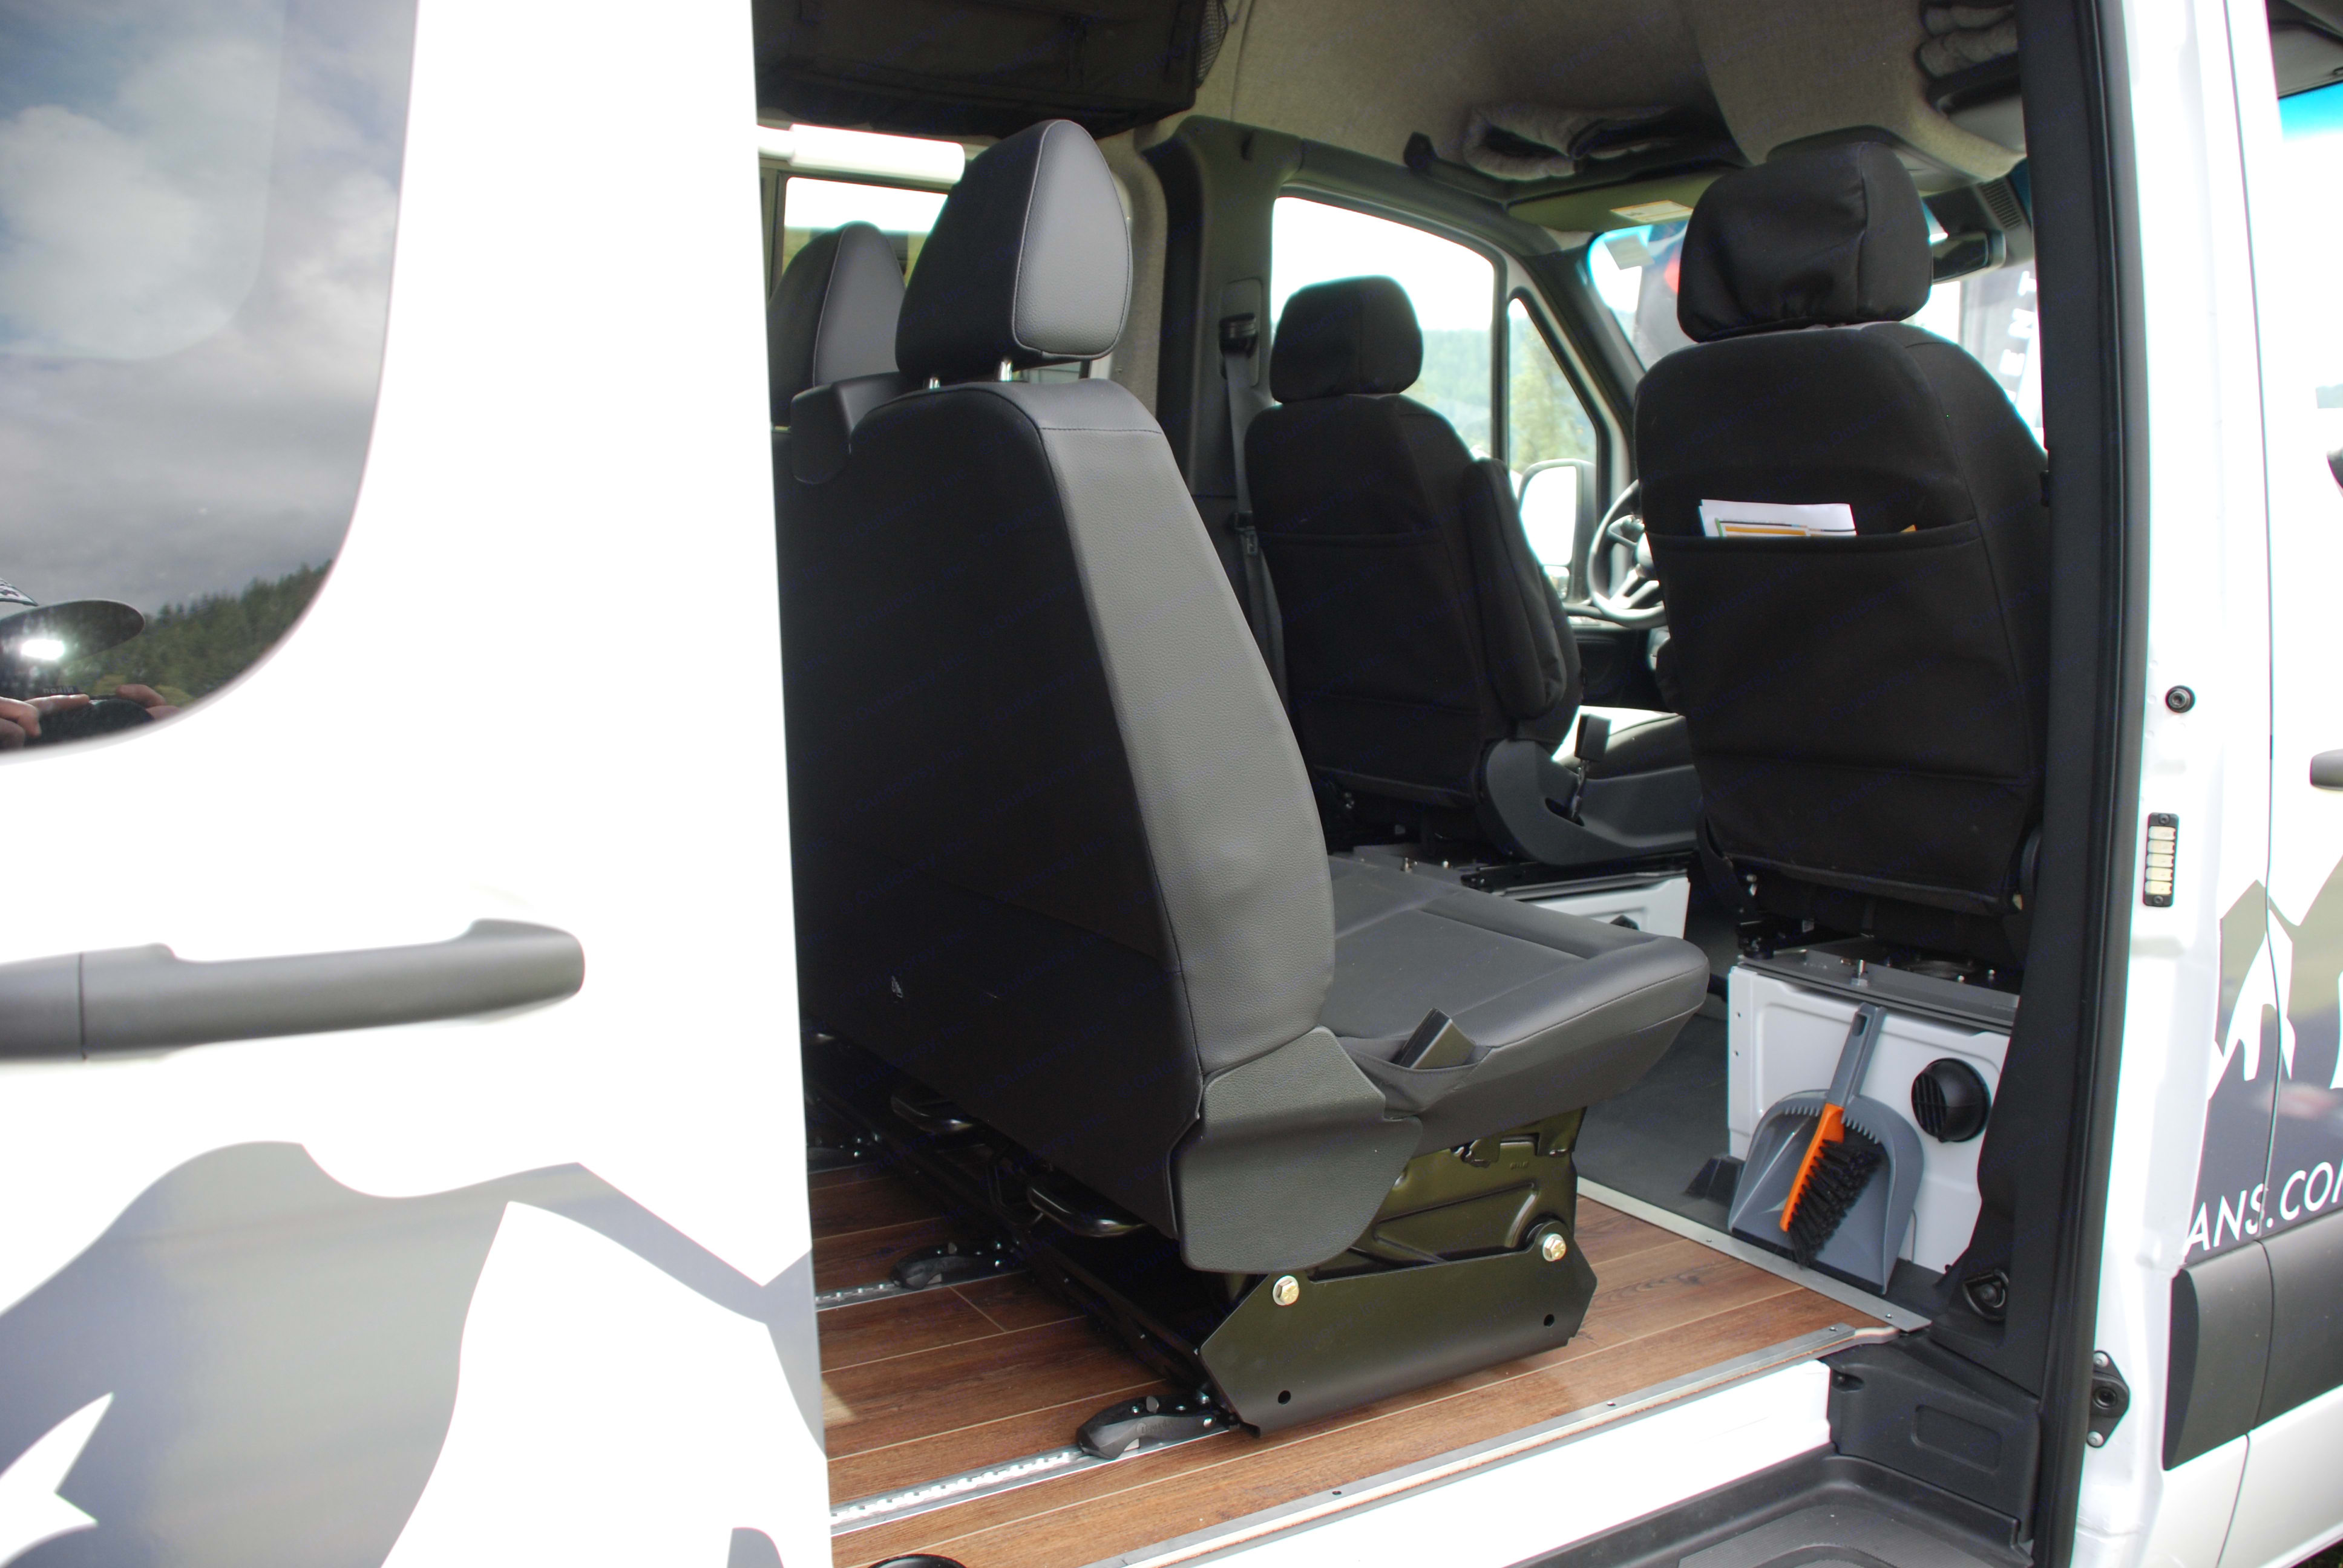 Seating for up to 5. Mercedes-Benz Sprinter 2019